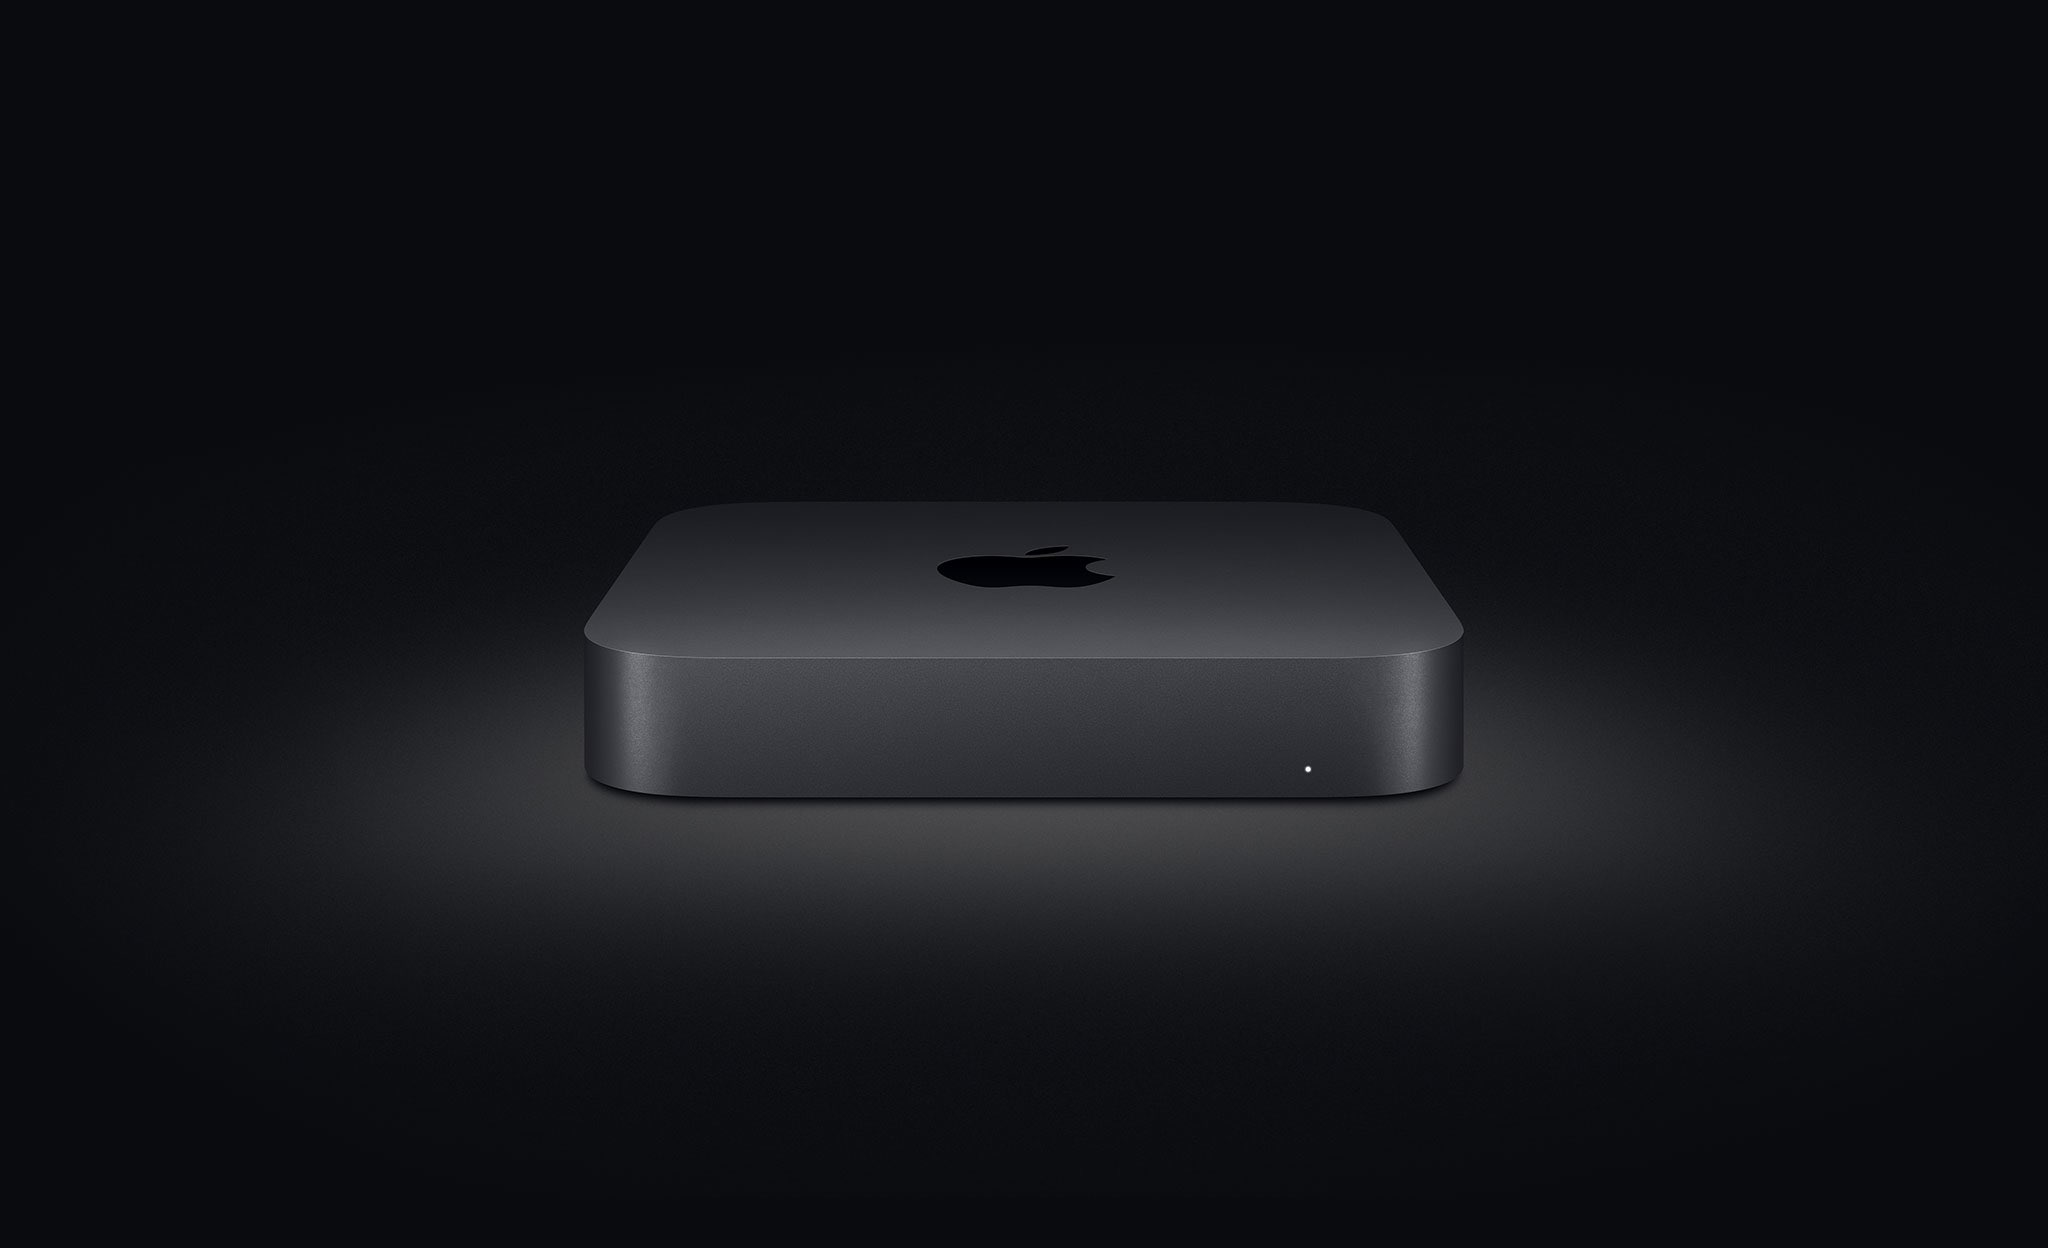 Apple's Mac mini computer photographed against a dark background